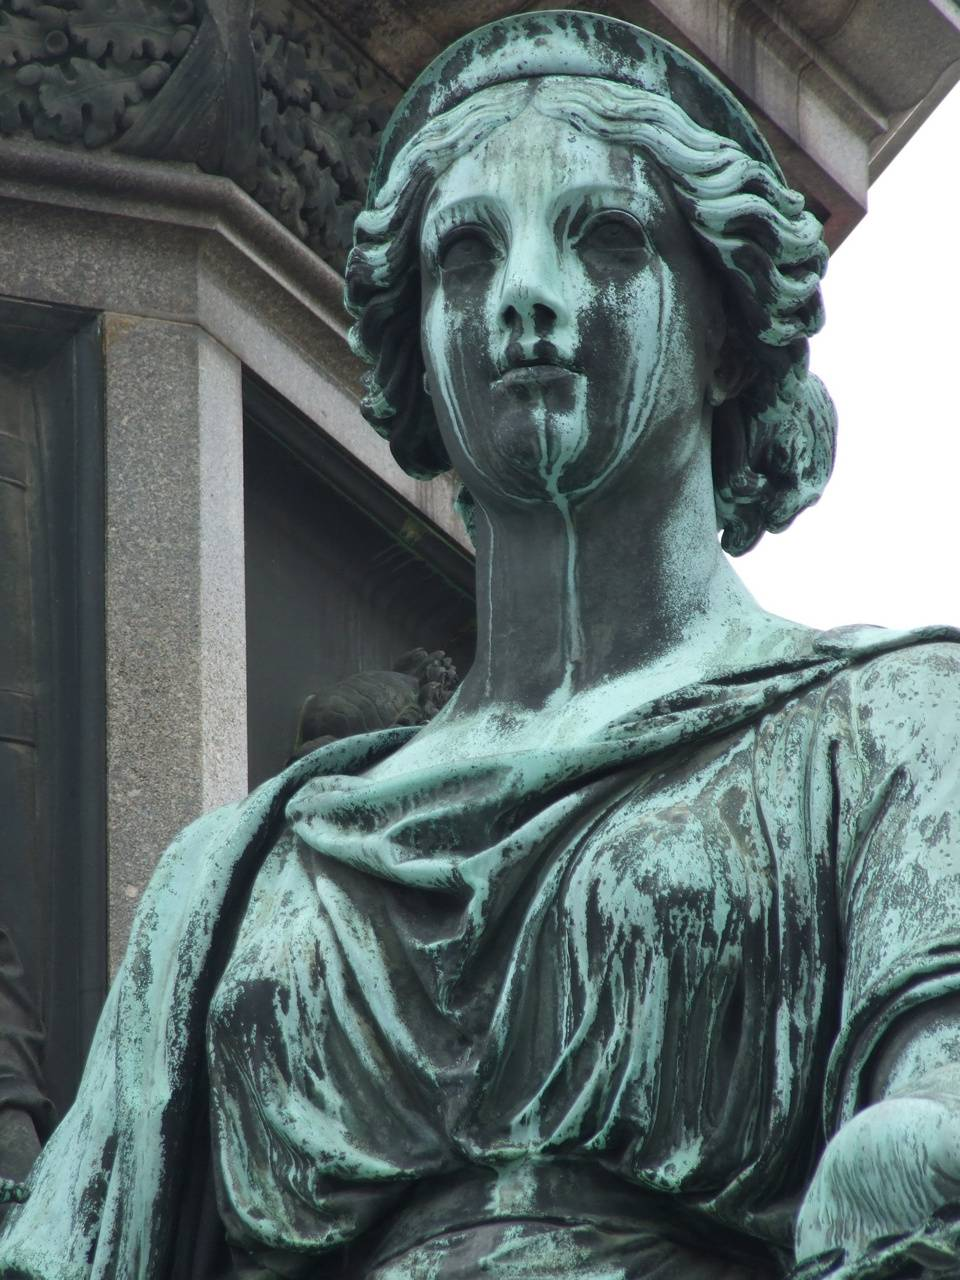 Scary Woman Statue